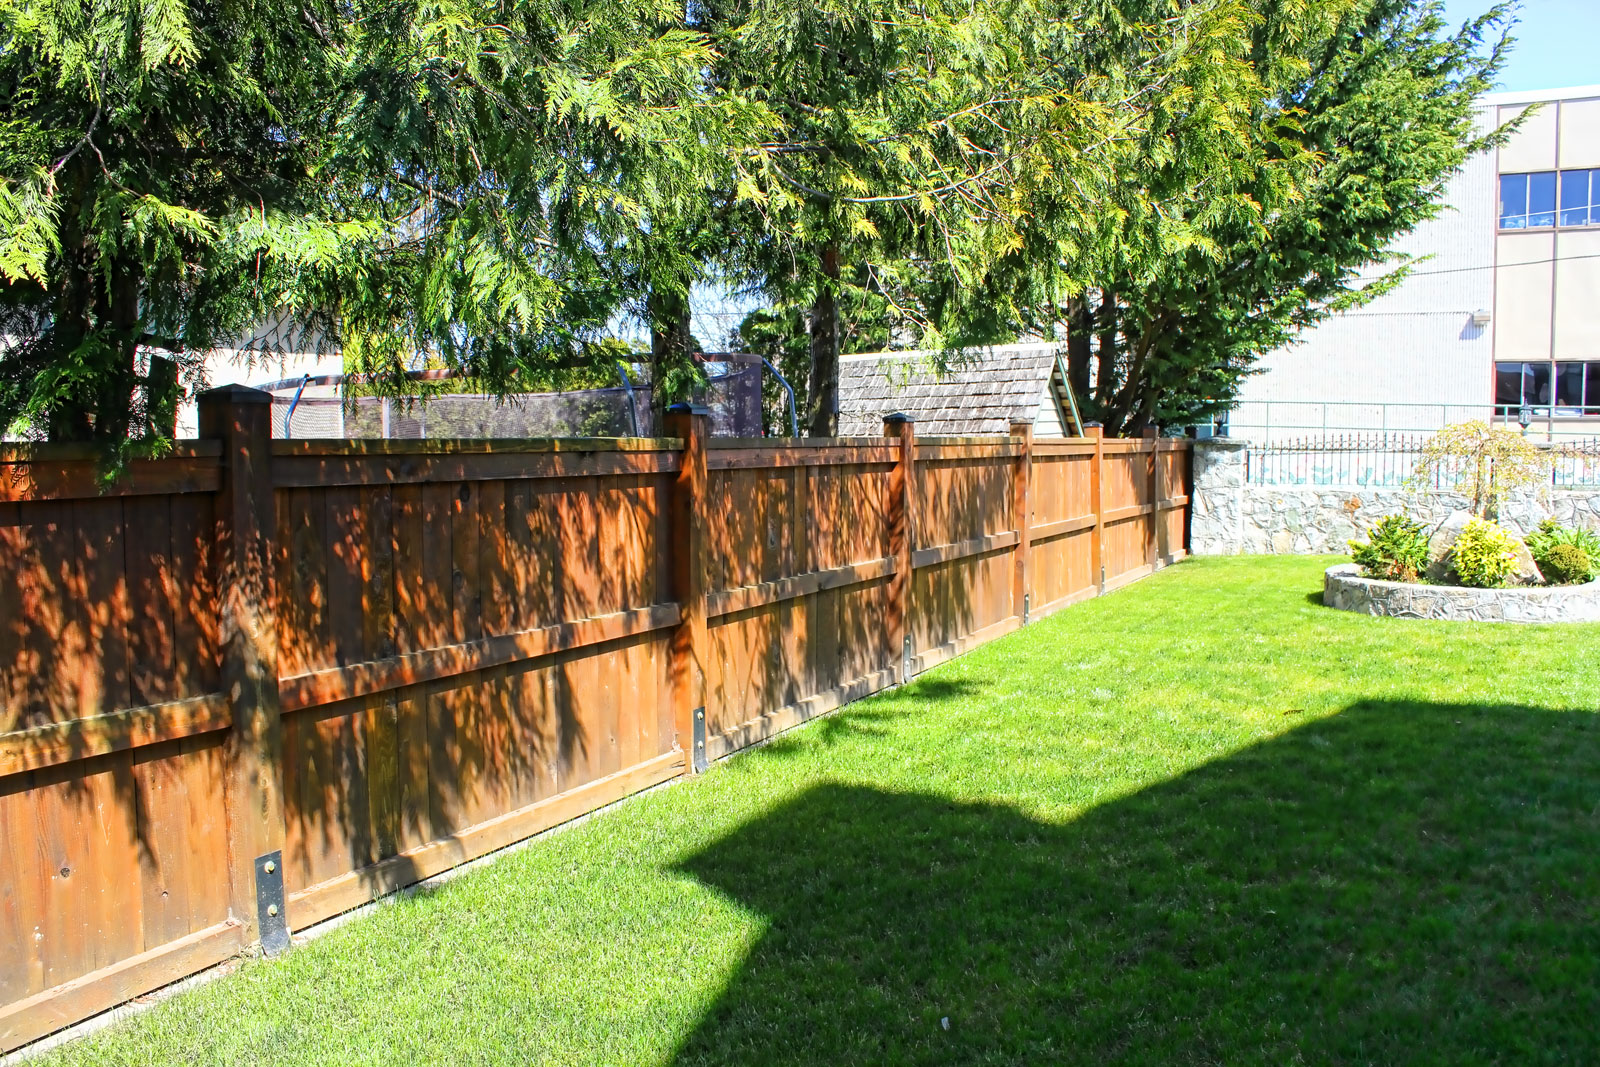 A fence abuts the stone wall